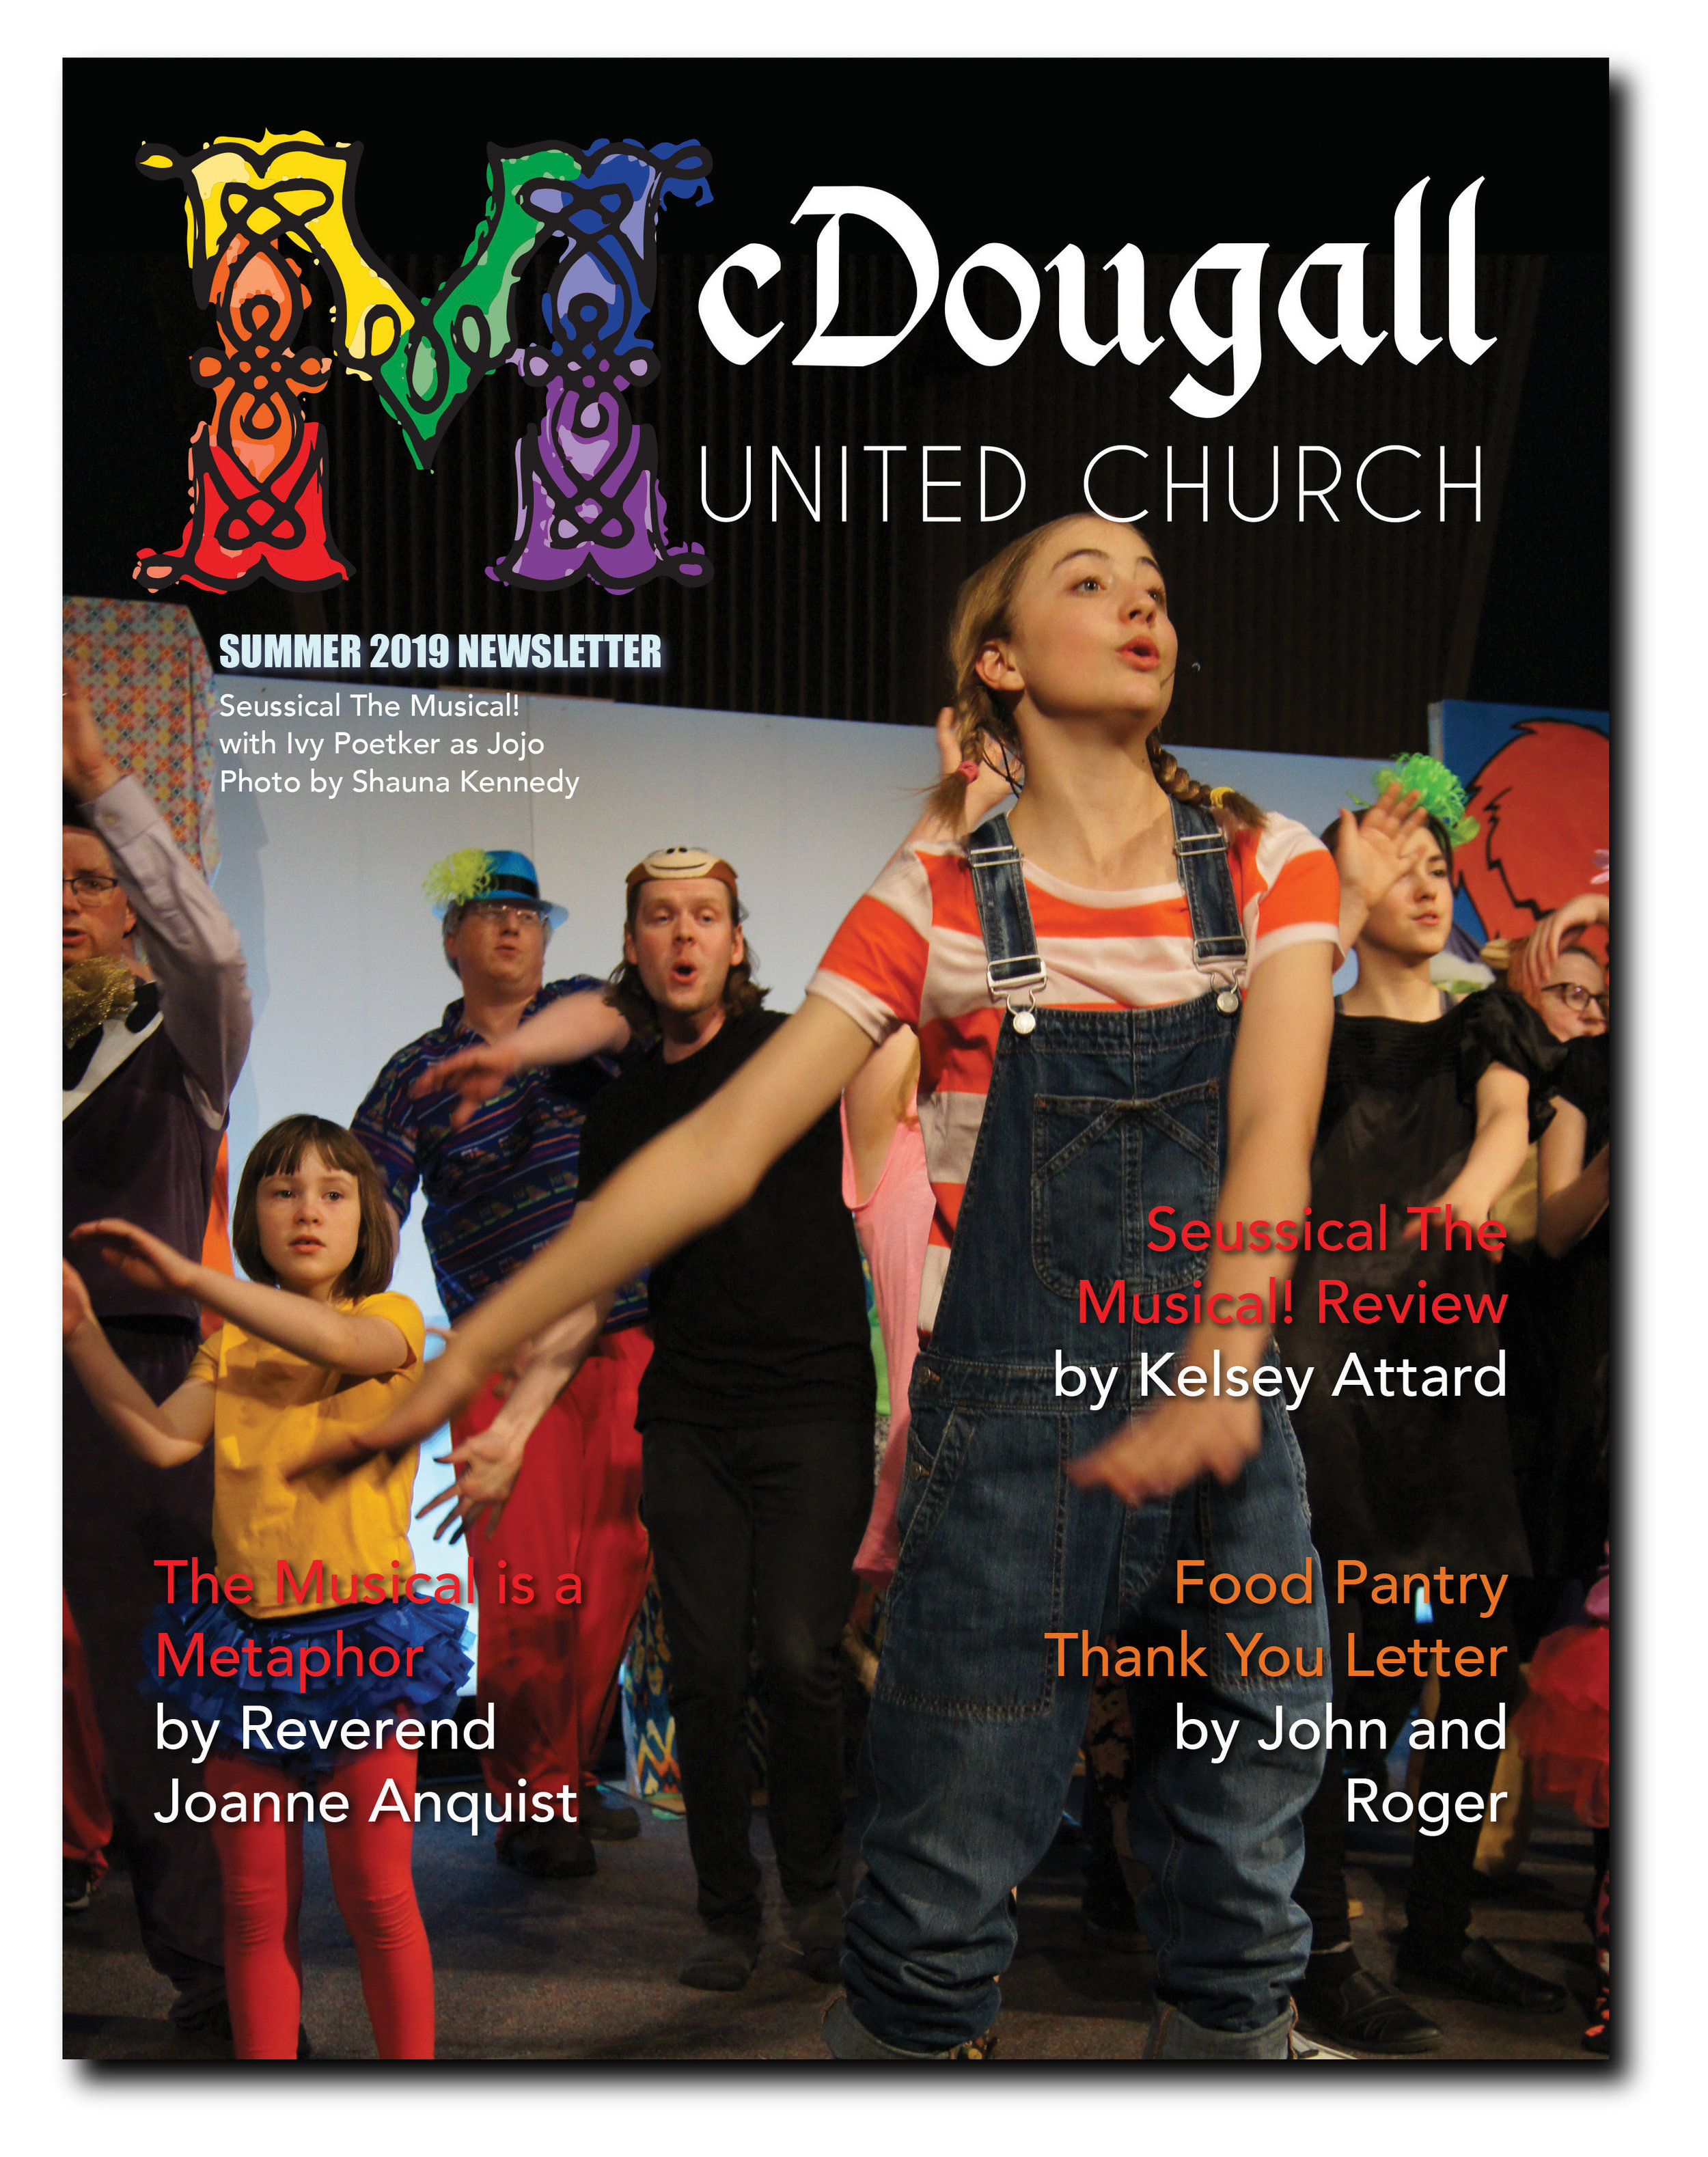 Download the Summer Newsletter here… - CLICK HERE to download the latest McDougall Newsletter.